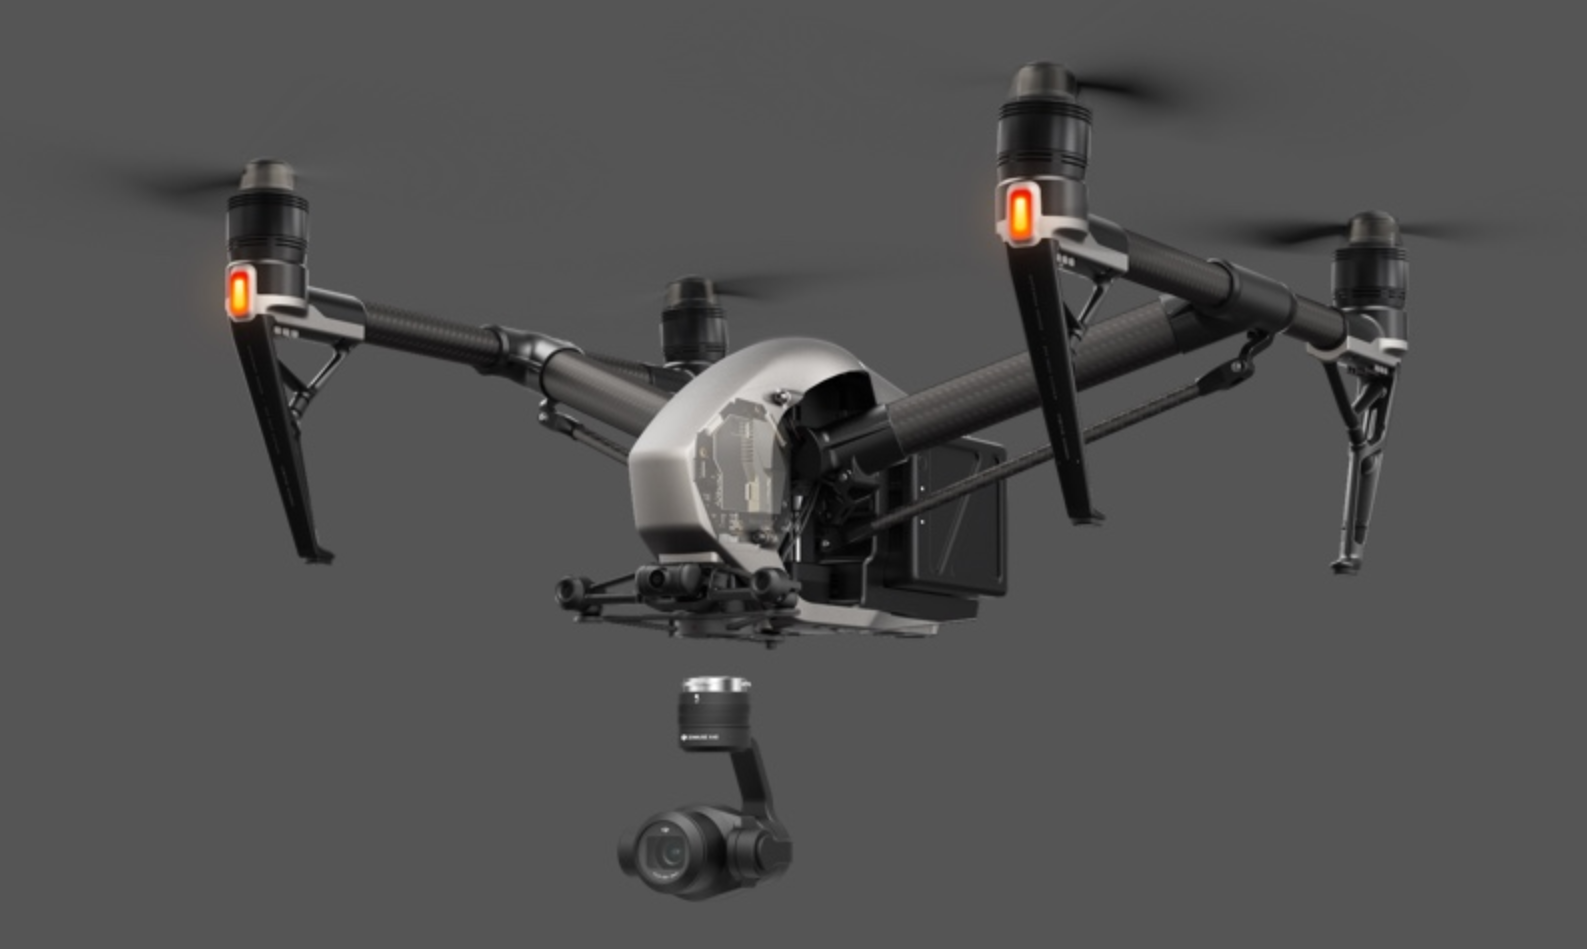 Dji Zenmuse X4s Camera Drone Services Hawaii Professional Drones In Burst Mode The Supports 14fps Shooting At 20 Megapixels Both Jpeg And Dng Formats It Is Able To Make Thedifficult Balance Between